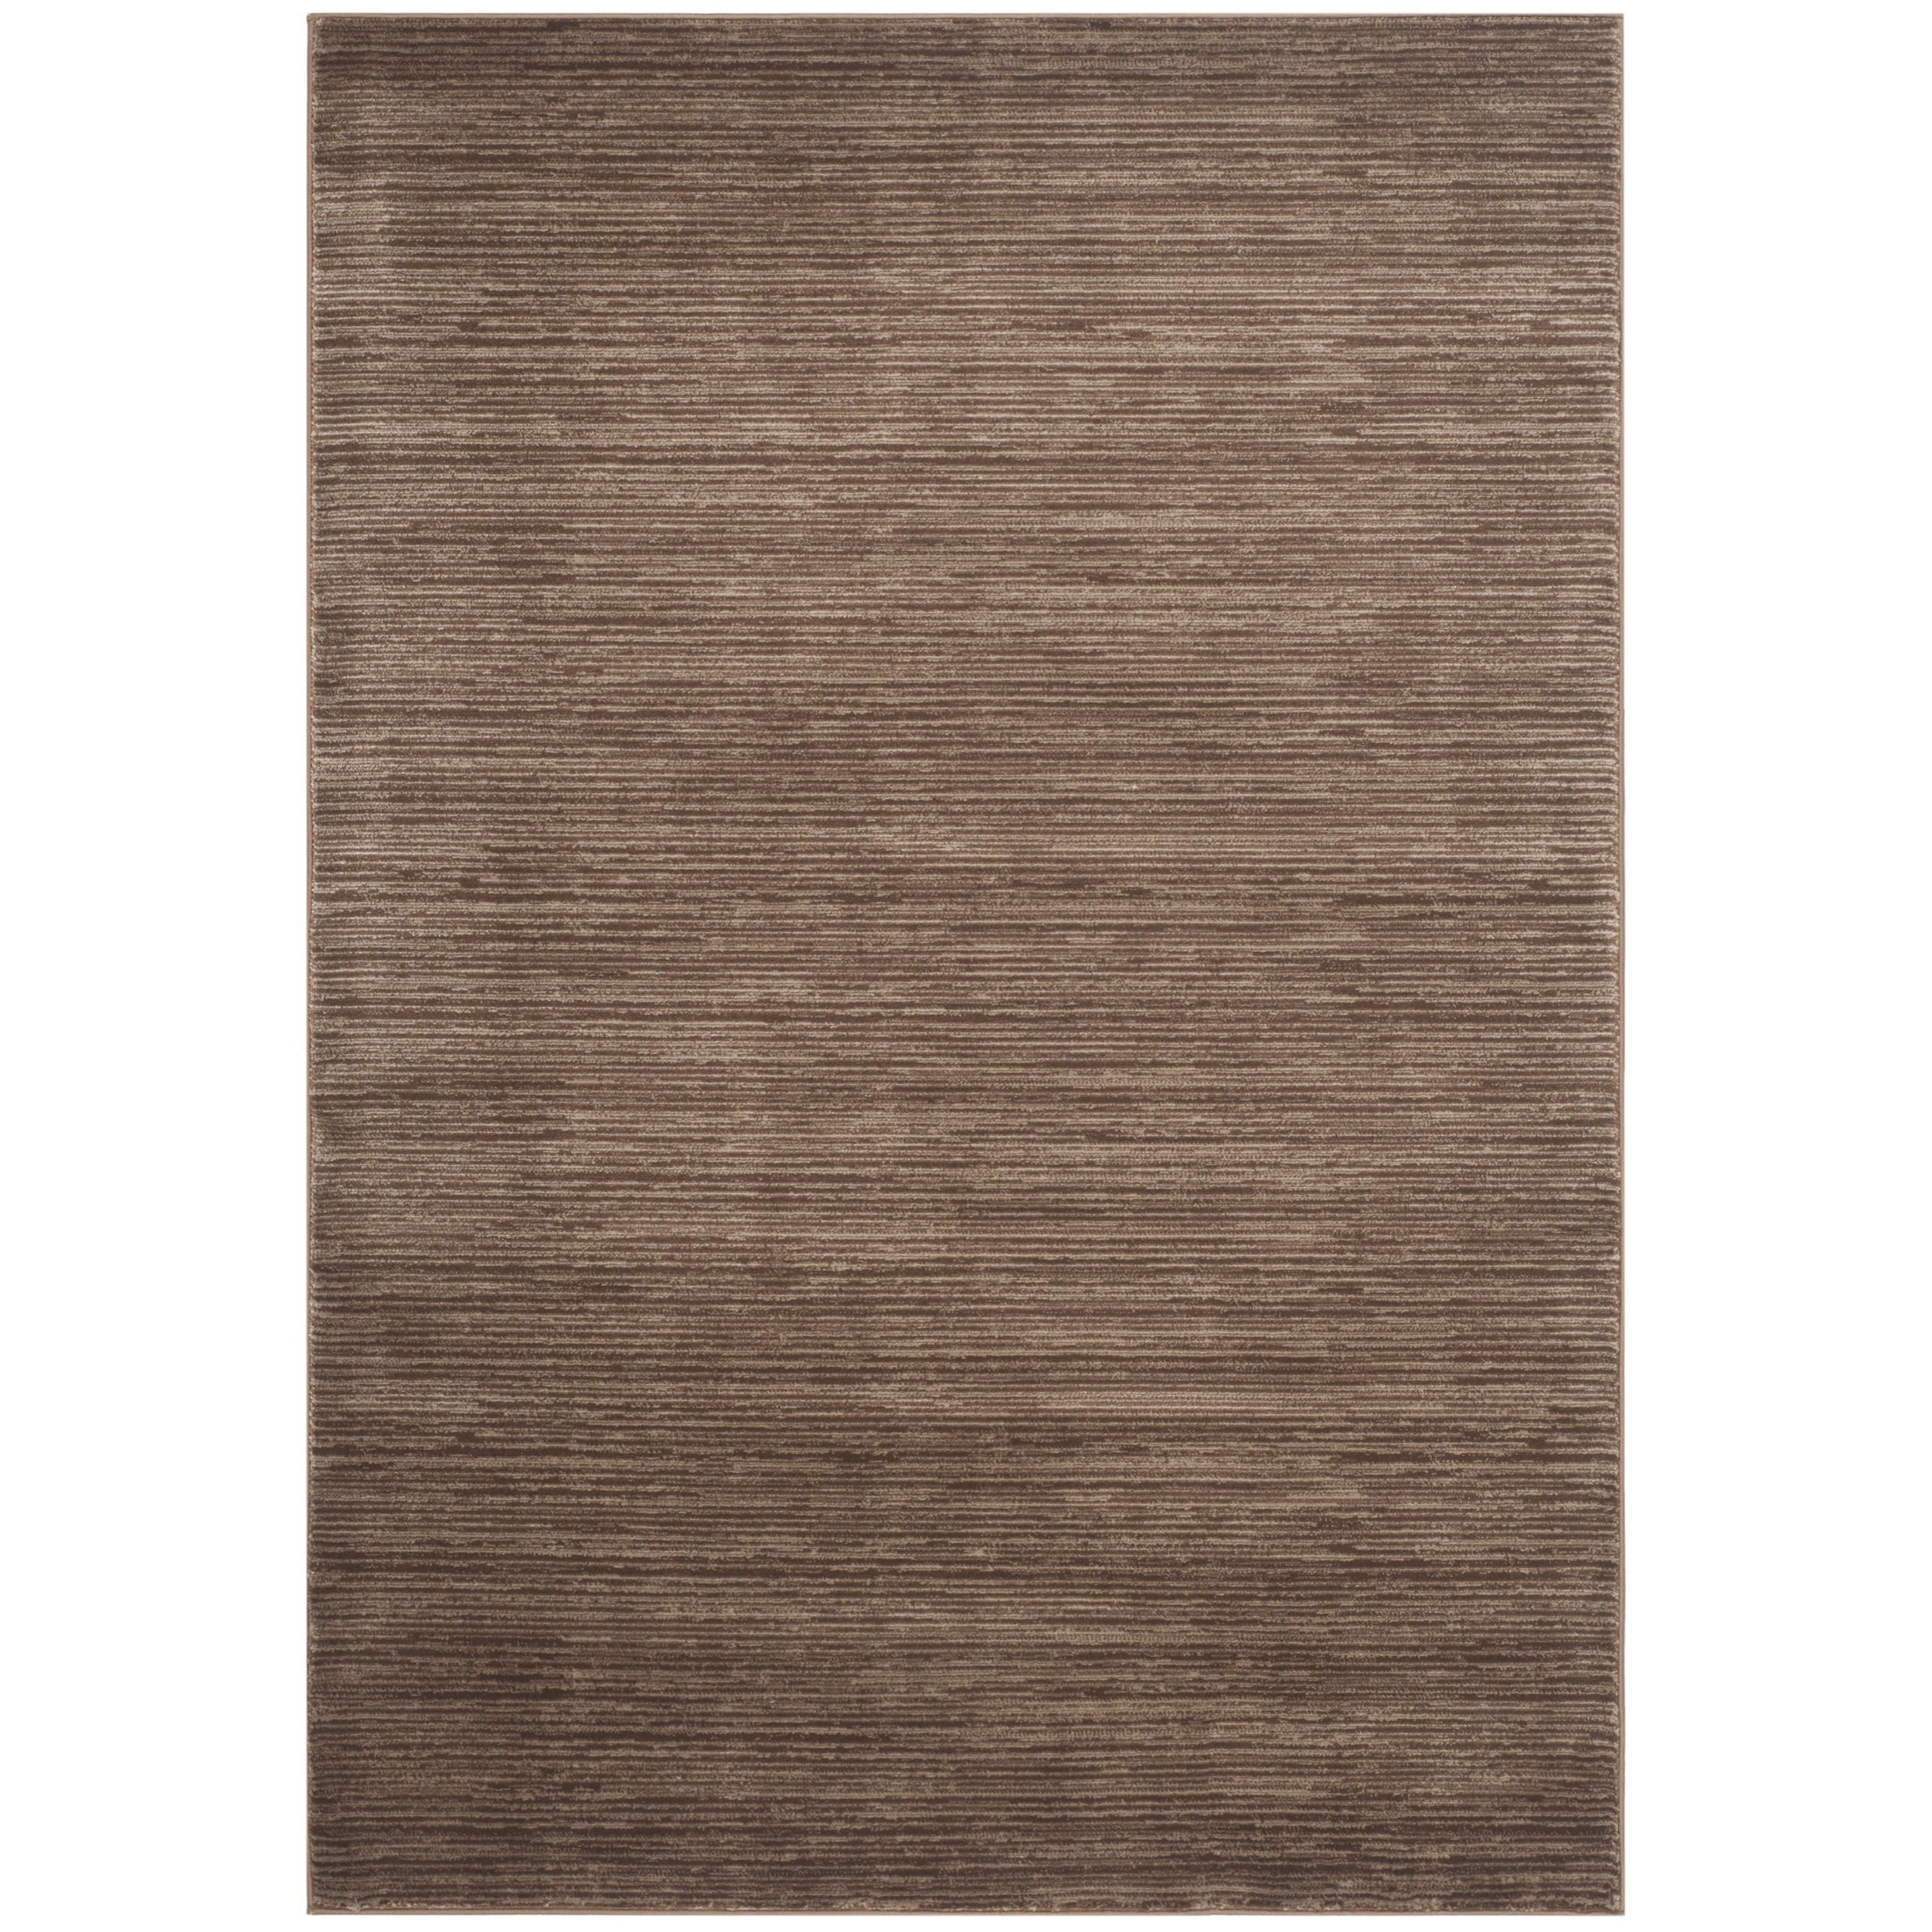 Safavieh Vision Contemporary Tonal Brown Area Rug (3' x 5') , Size 3' x 5' (Polypropylene, Geometric)